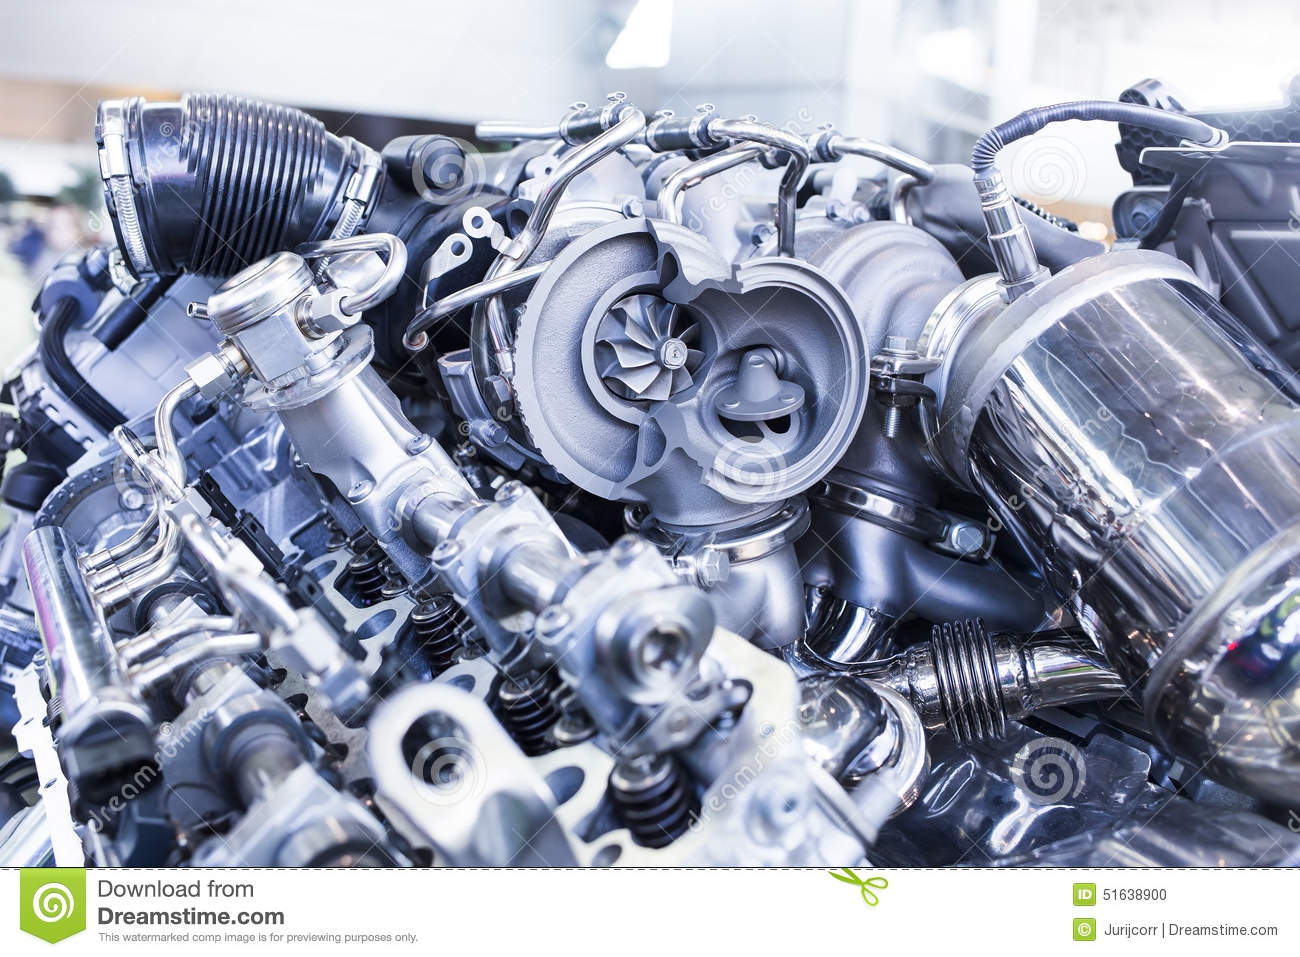 Turbo Car Engine Showing Inner Parts And Turbine Stock Photo - Image ...